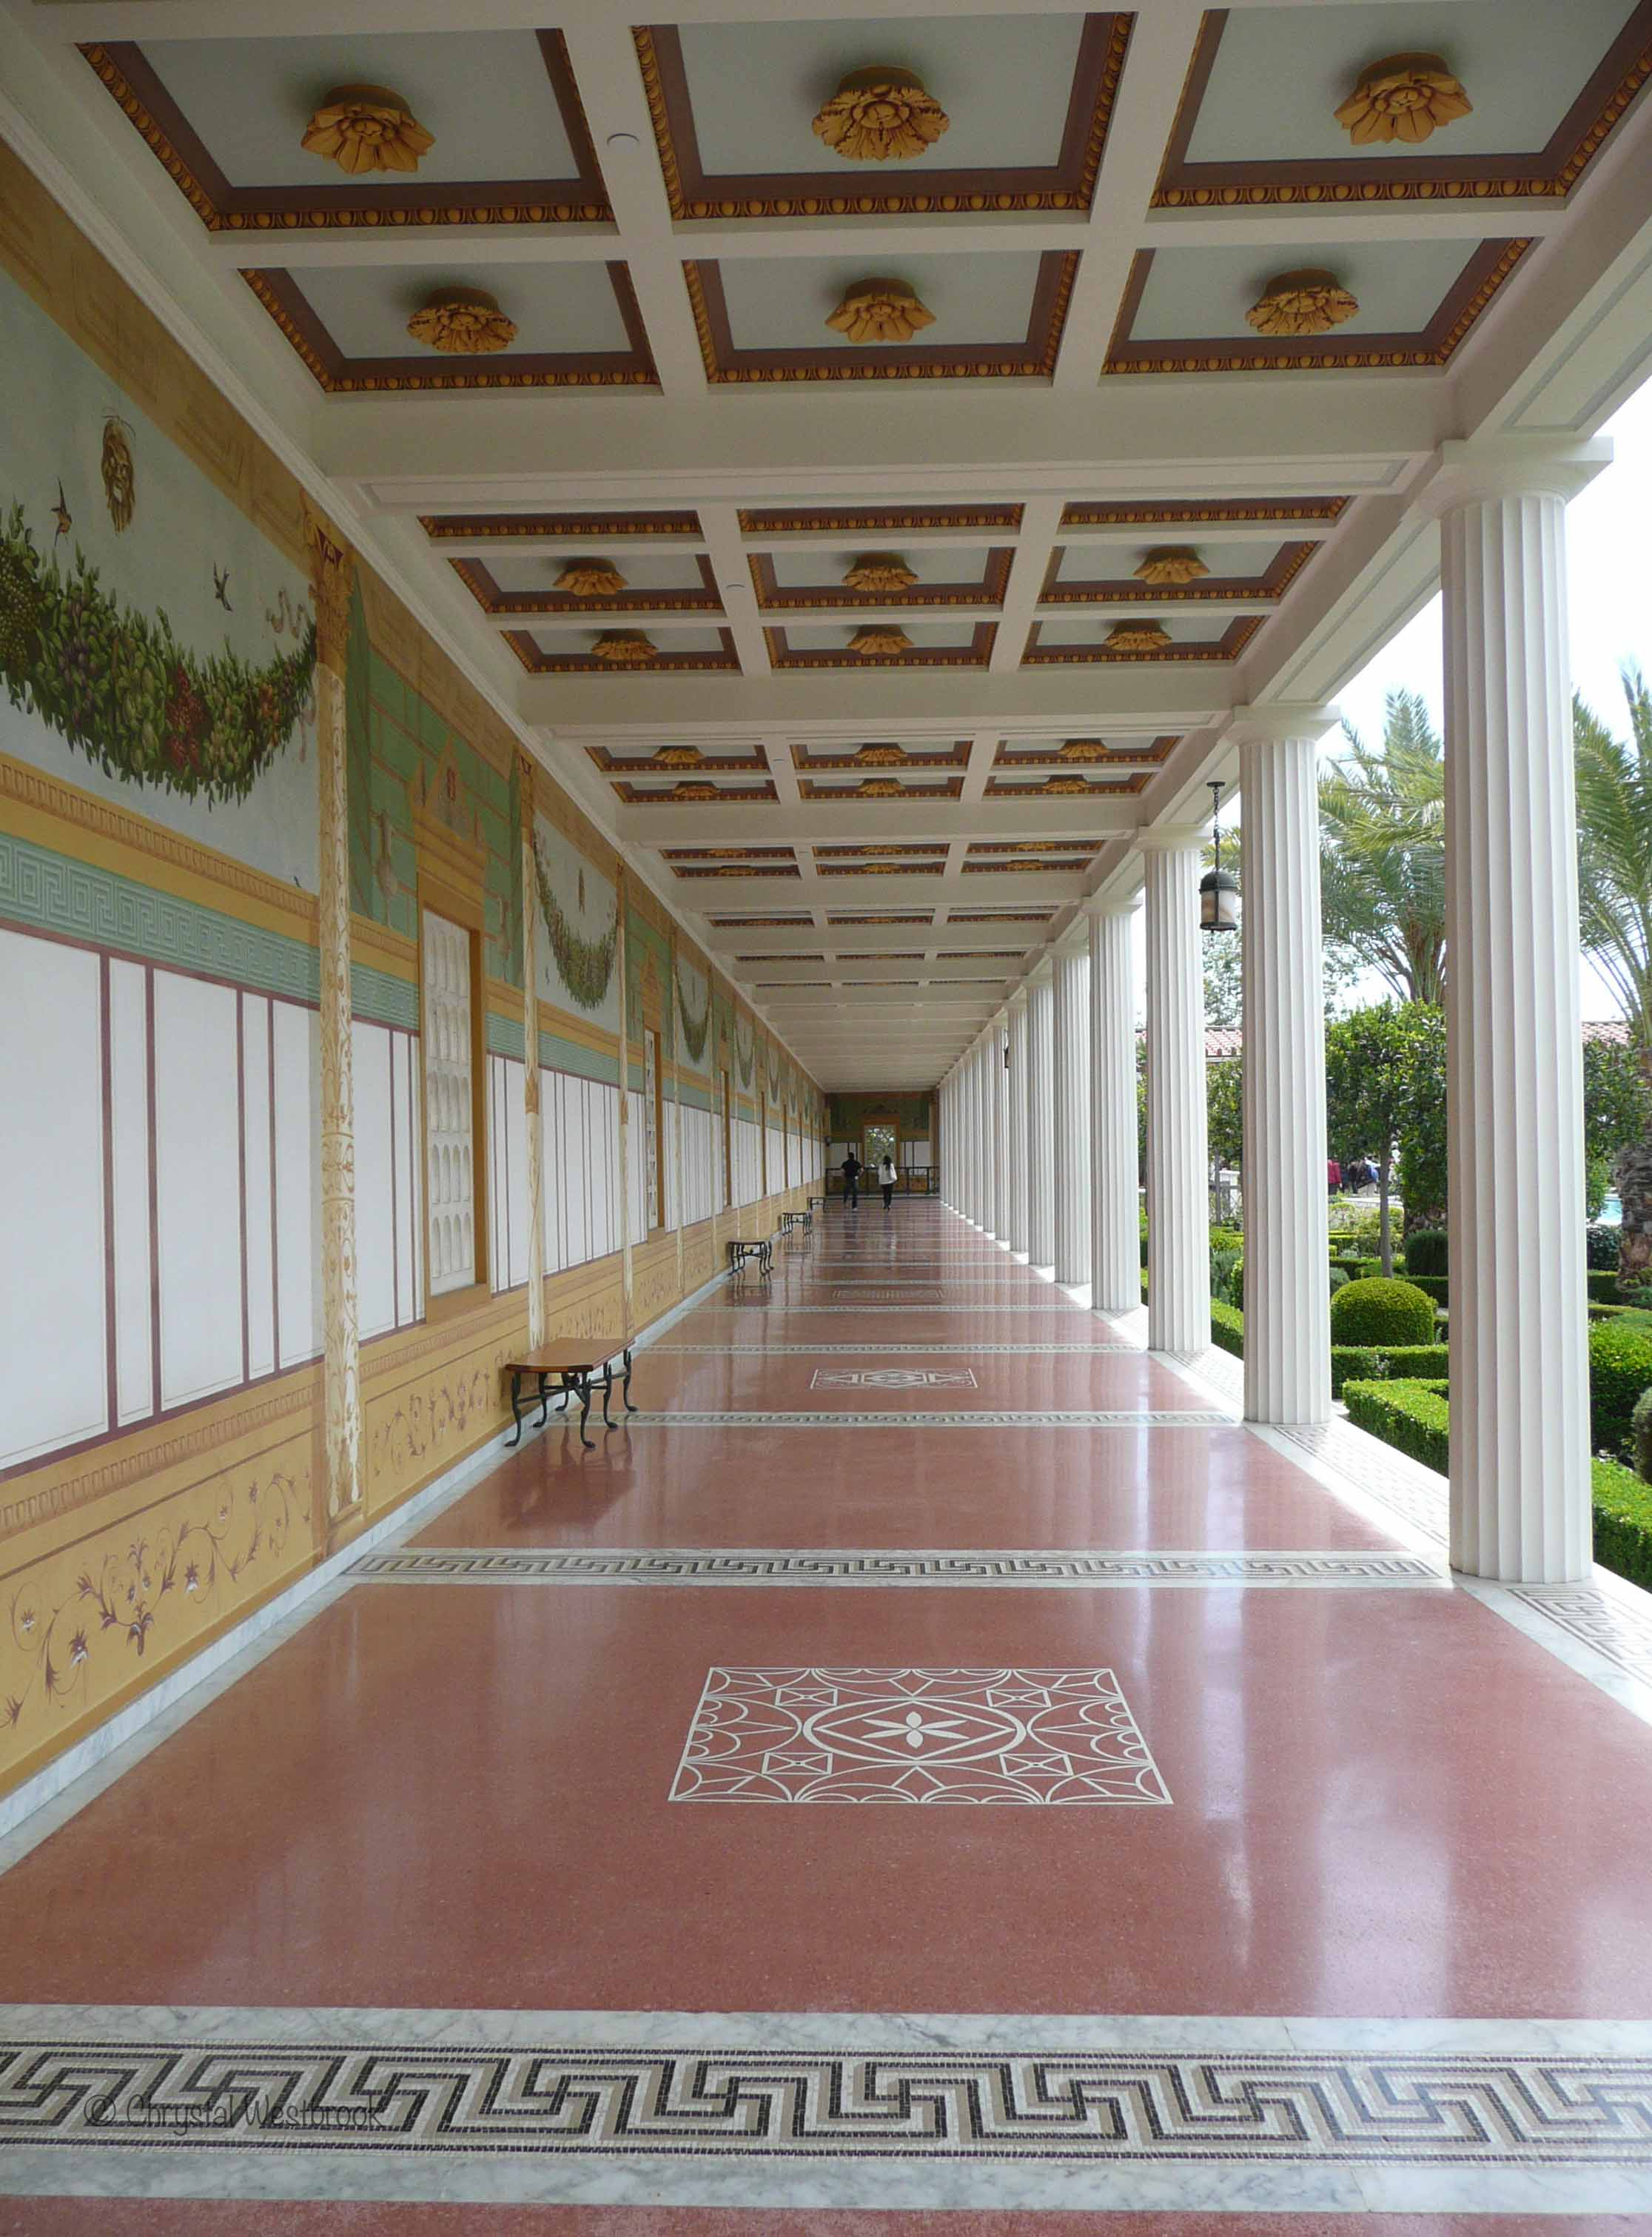 [IMAGE] Roman-style cloistered walkway with murals and coffered ceiling